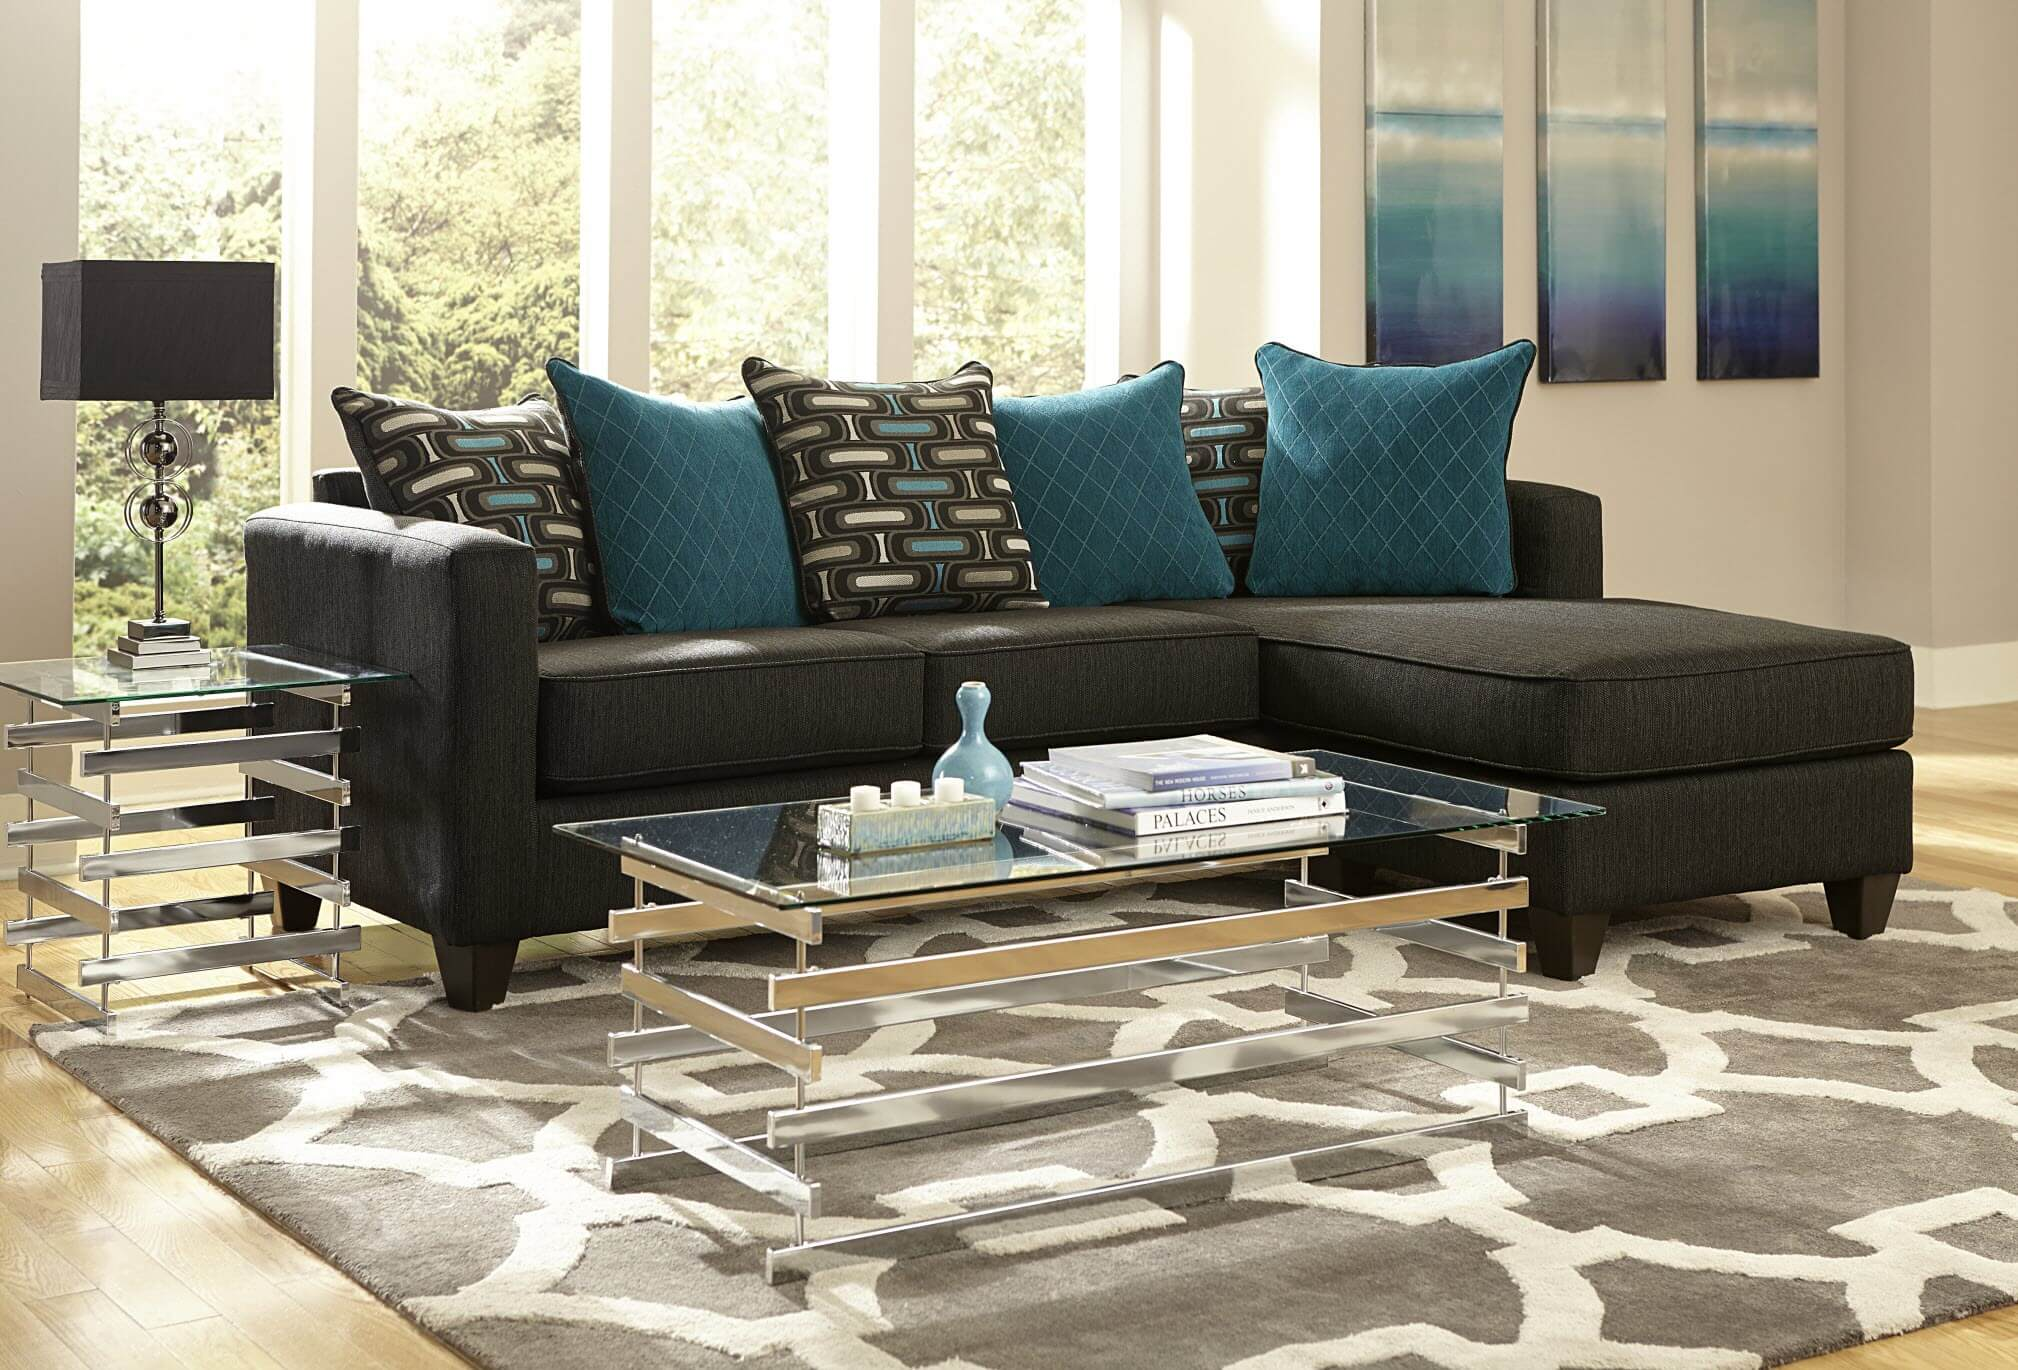 Discount Living Room Furniture Nj on Ashley Furniture Katisha Sectional